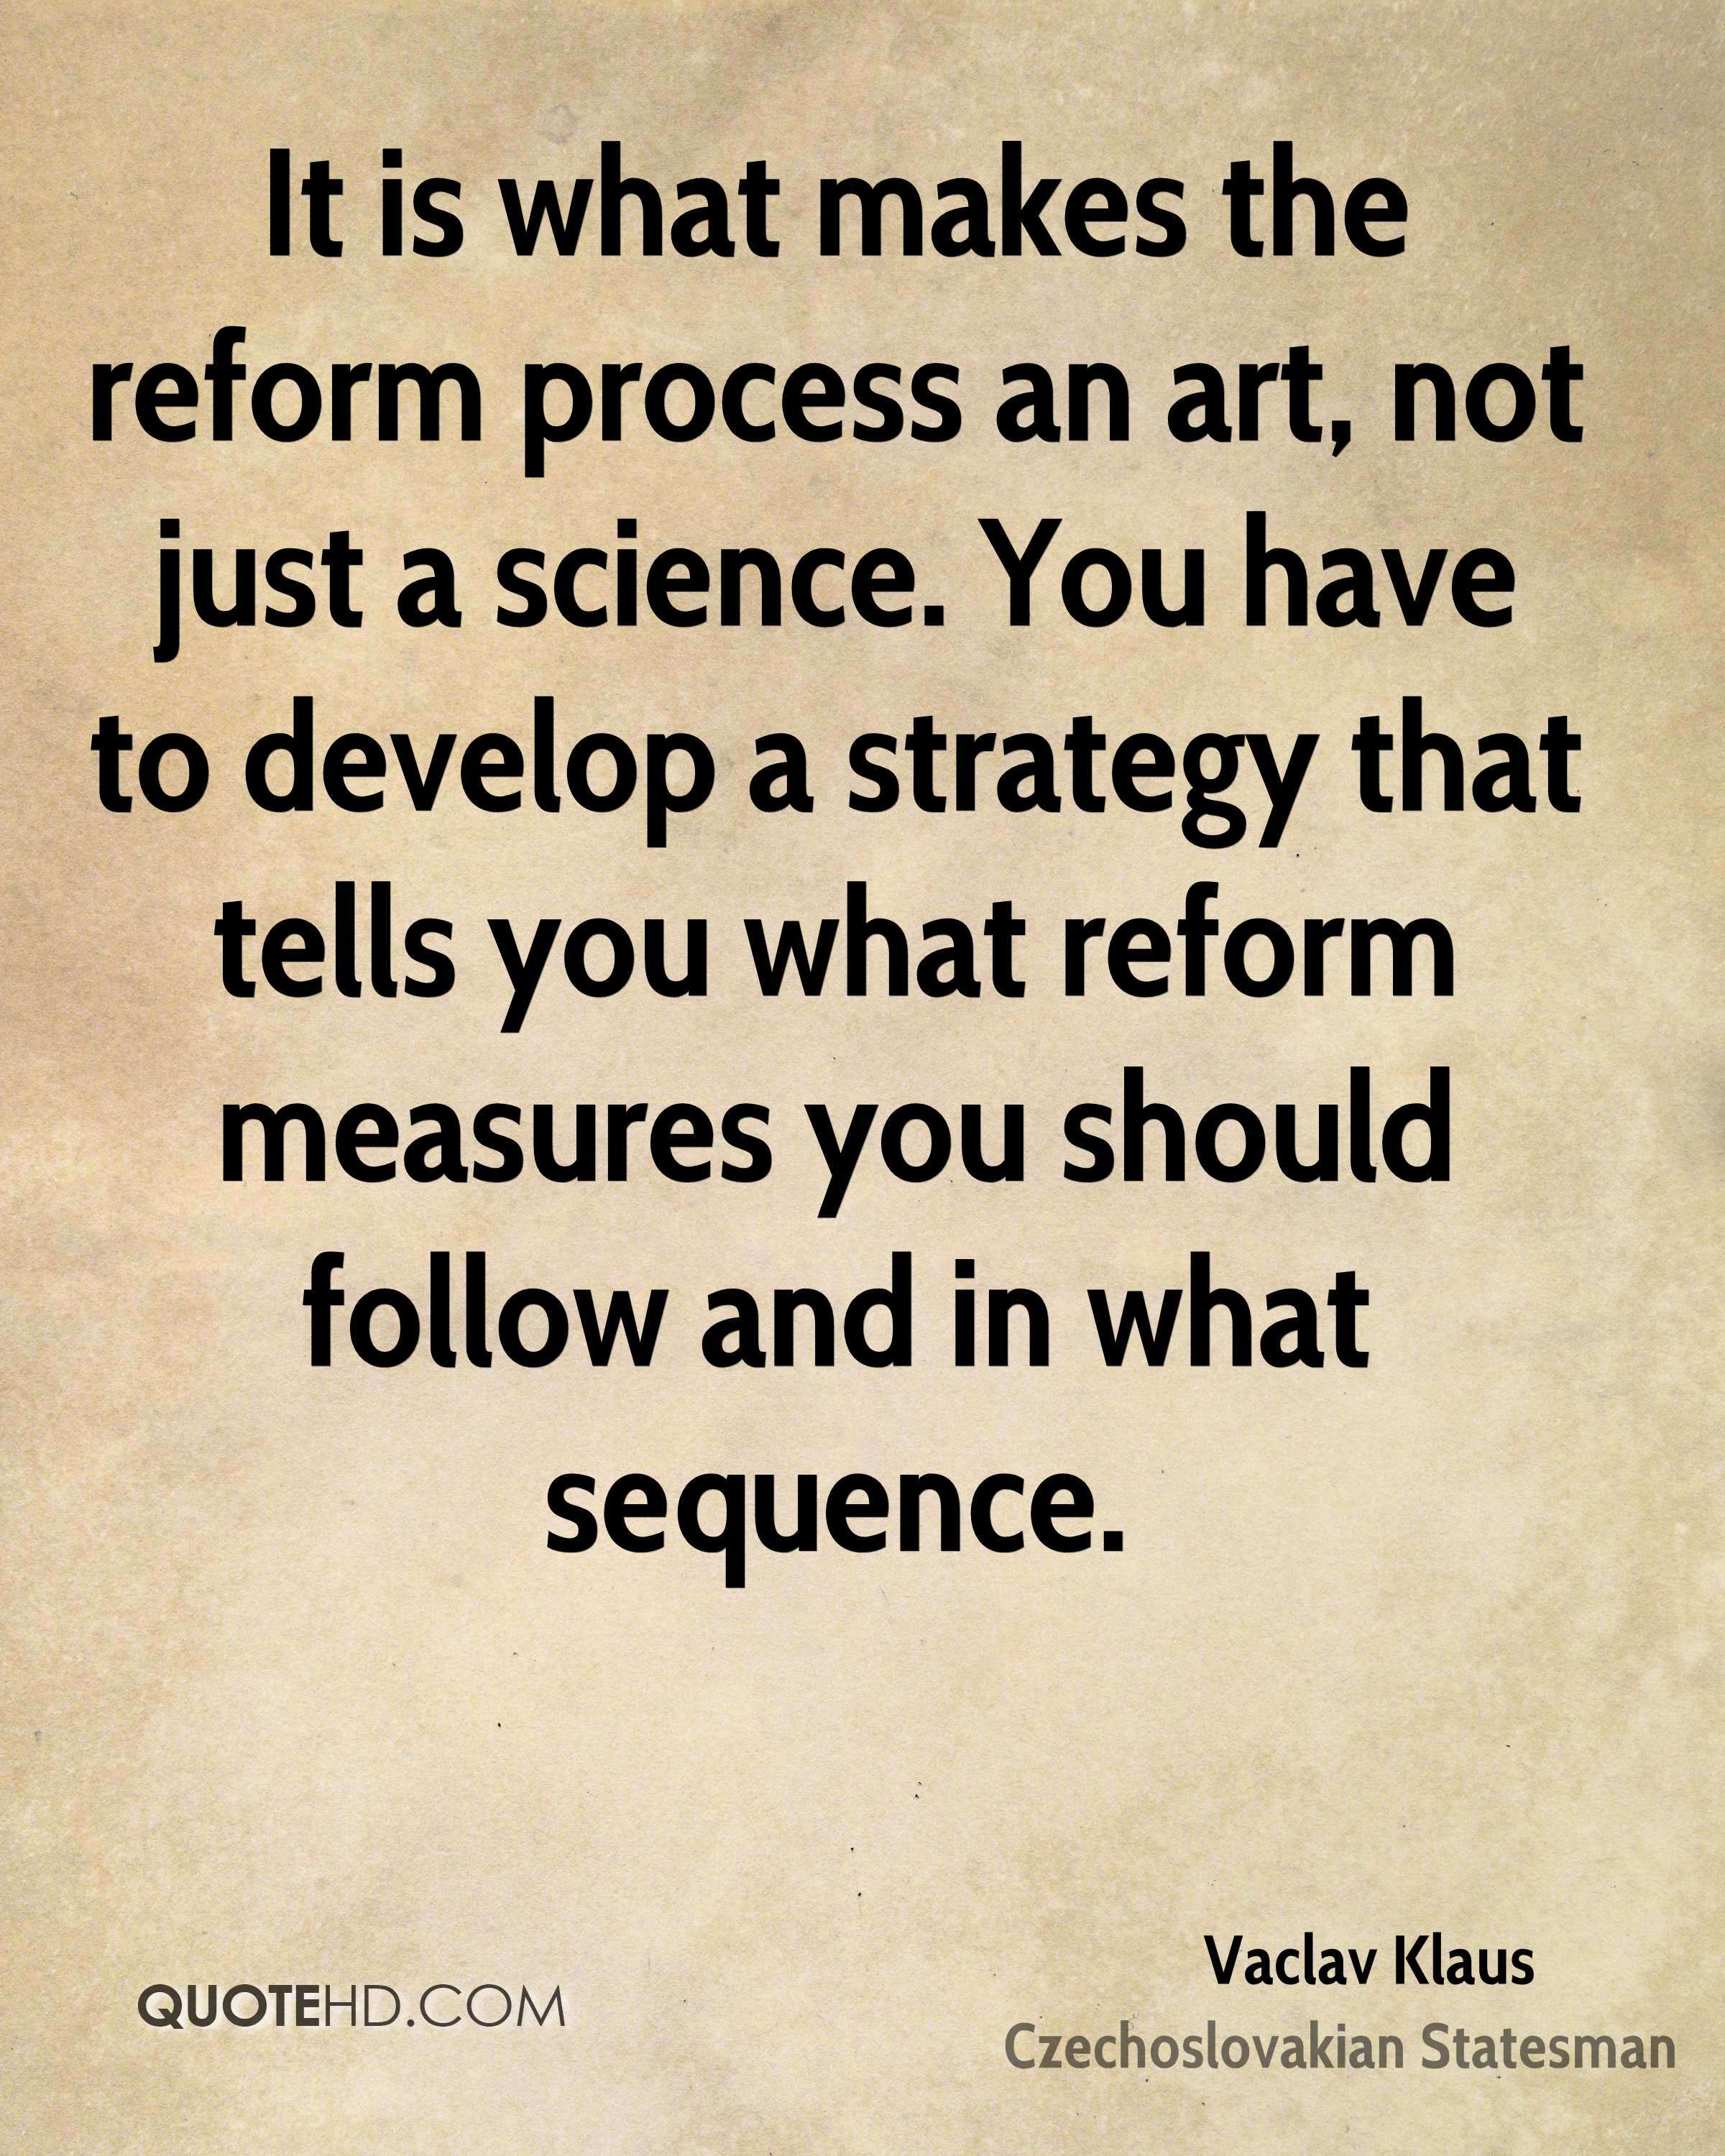 It is what makes the reform process an art, not just a science. You have to develop a strategy that tells you what reform measures you should follow and in what sequence.